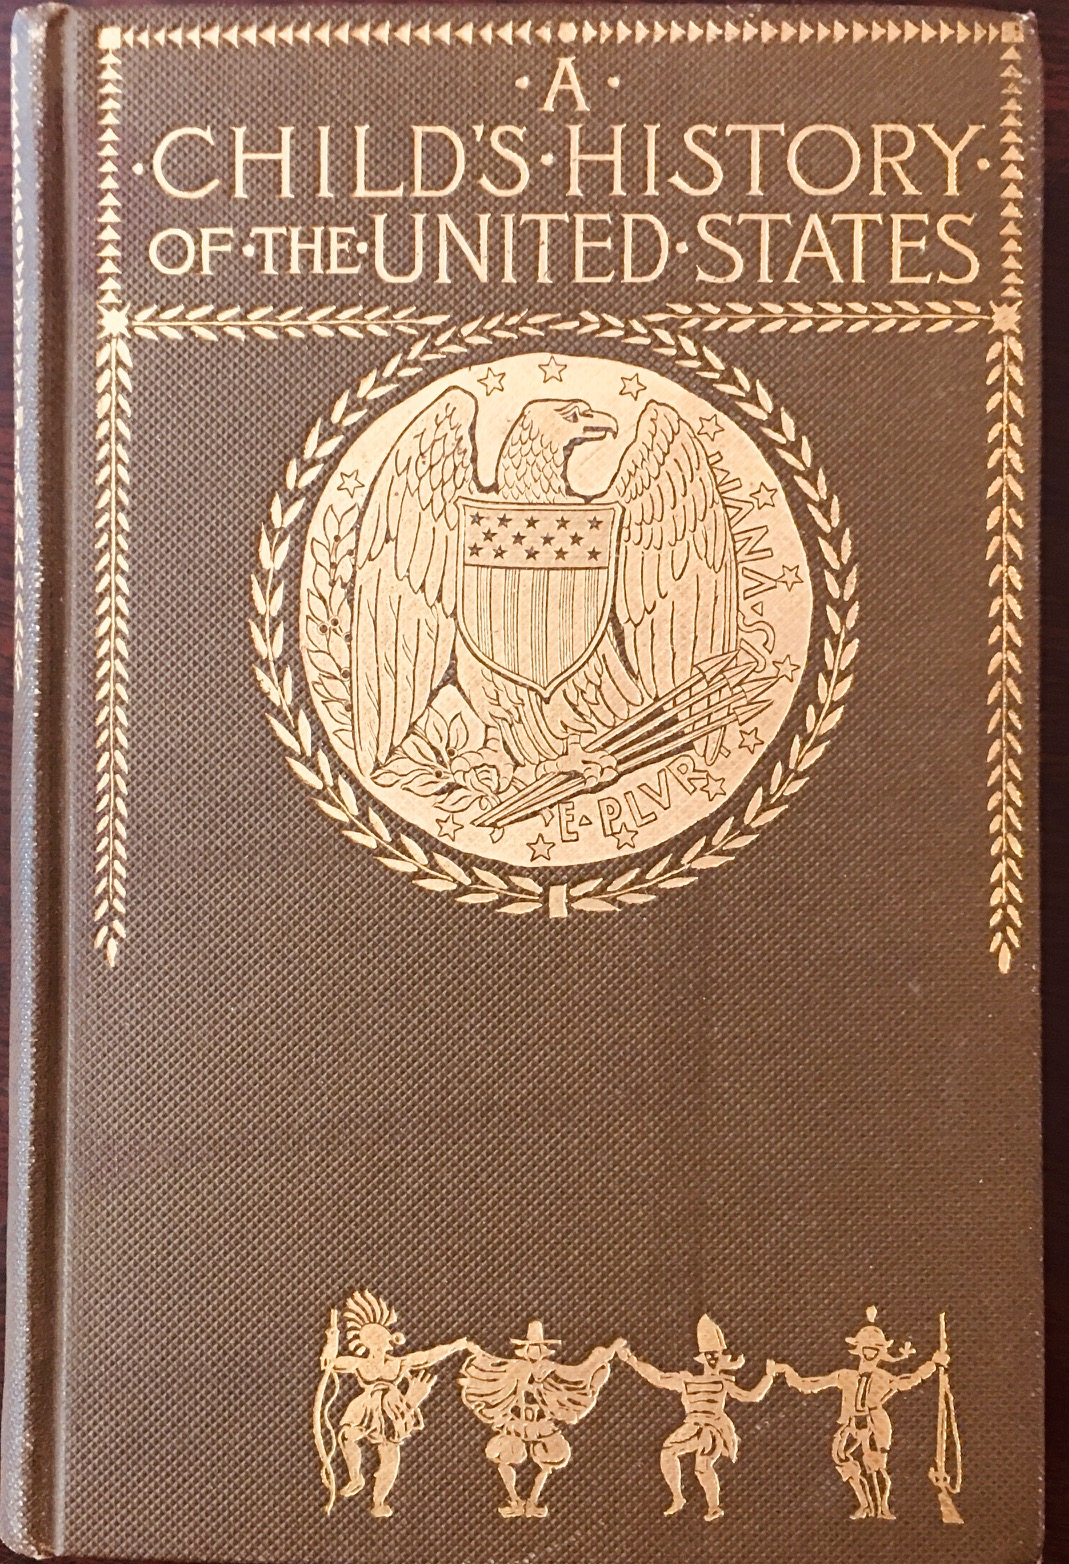 Image for A Child's History of the United States - Volume III, Part Second: History of the Great Rebellion